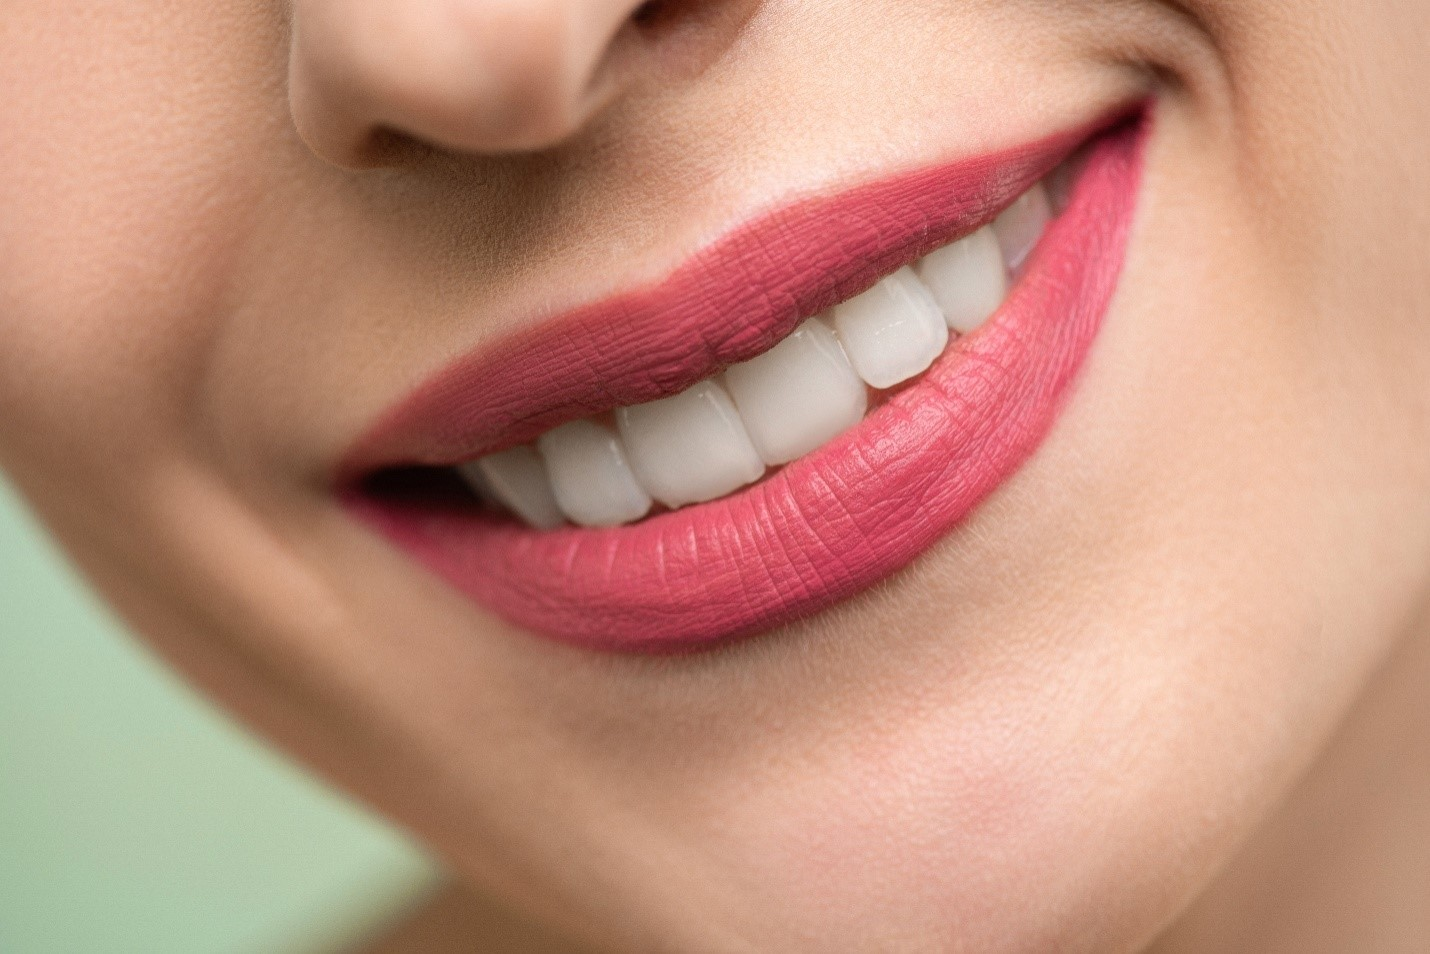 : A woman wearing pink lipstick is smiling